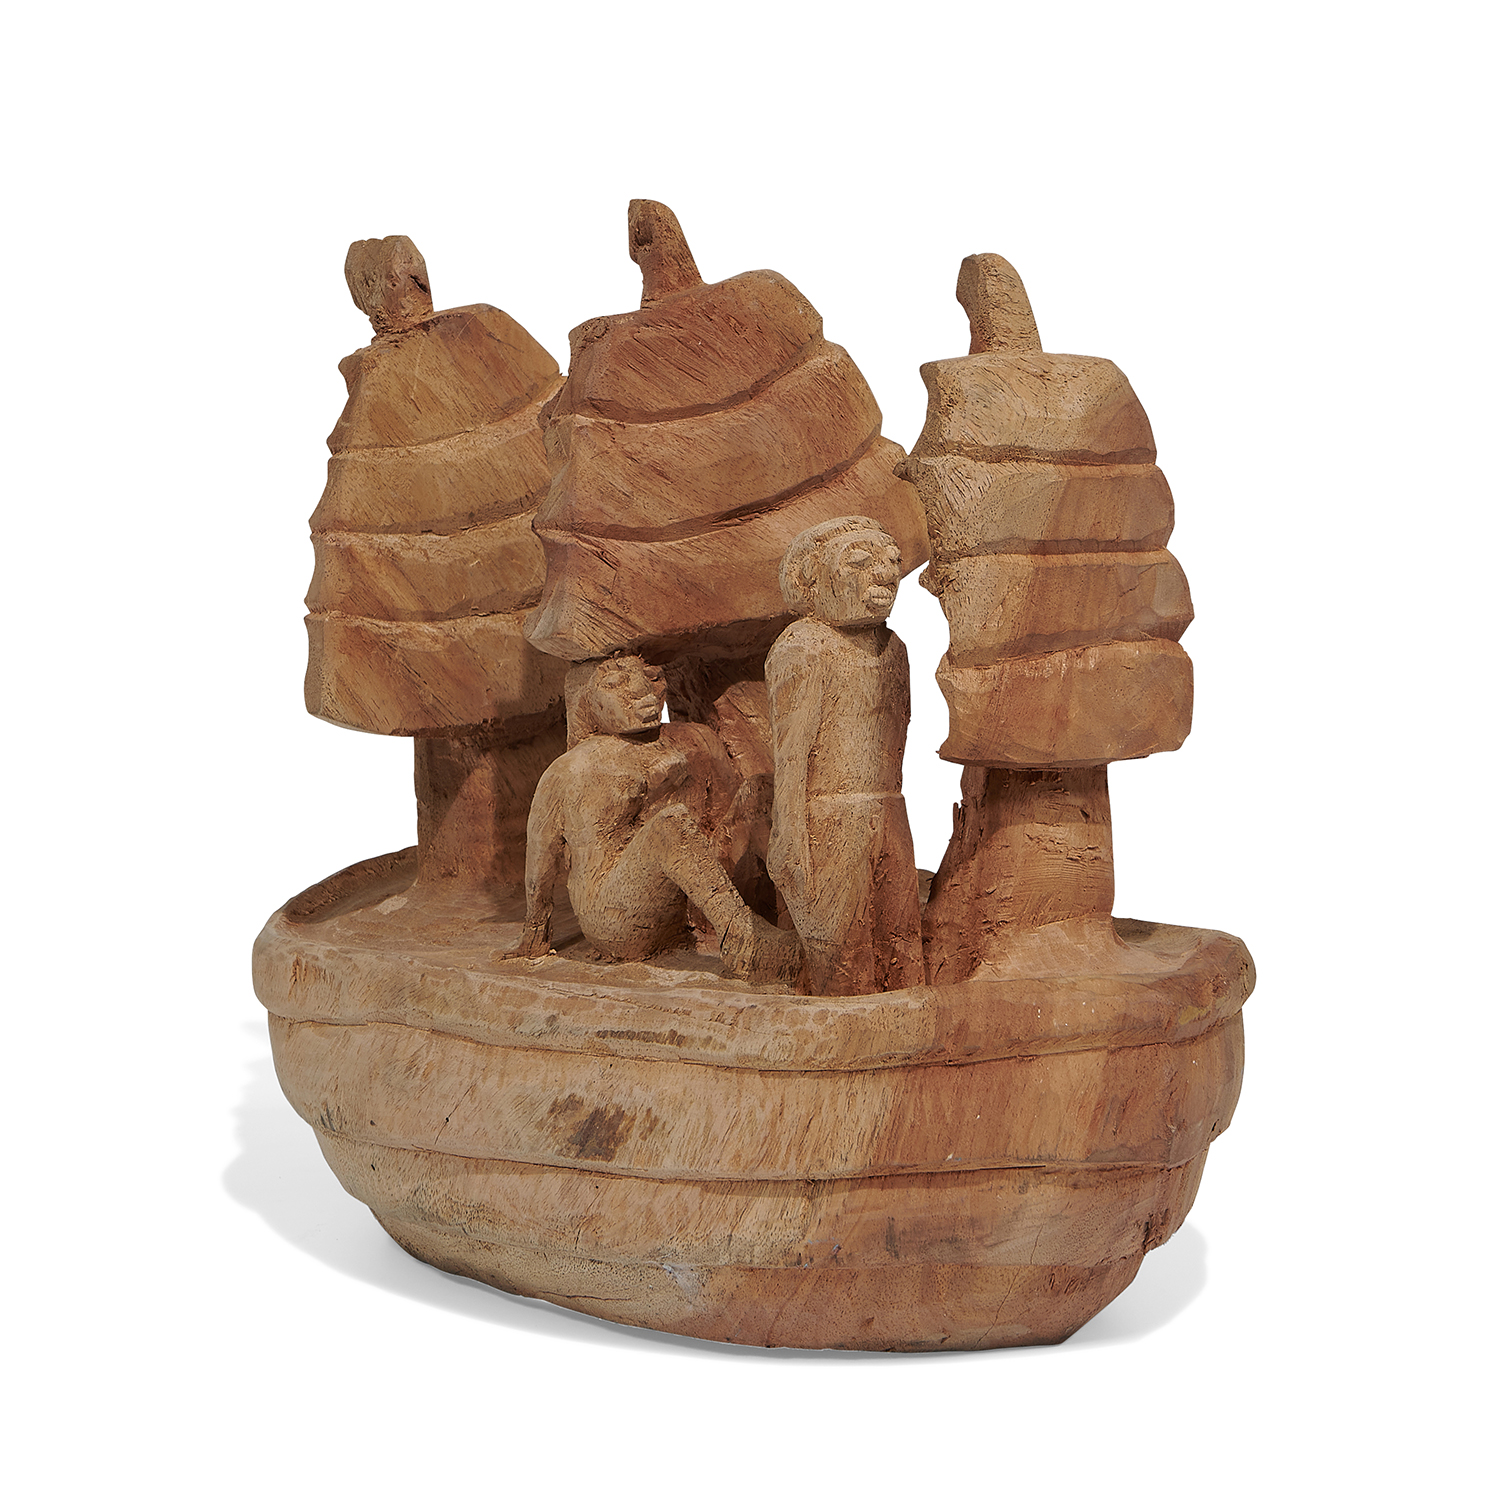 """Folk Art carved wood sculpture of two figures on a three-masted ship 8""""w x 14 1/4""""d x 12""""h"""